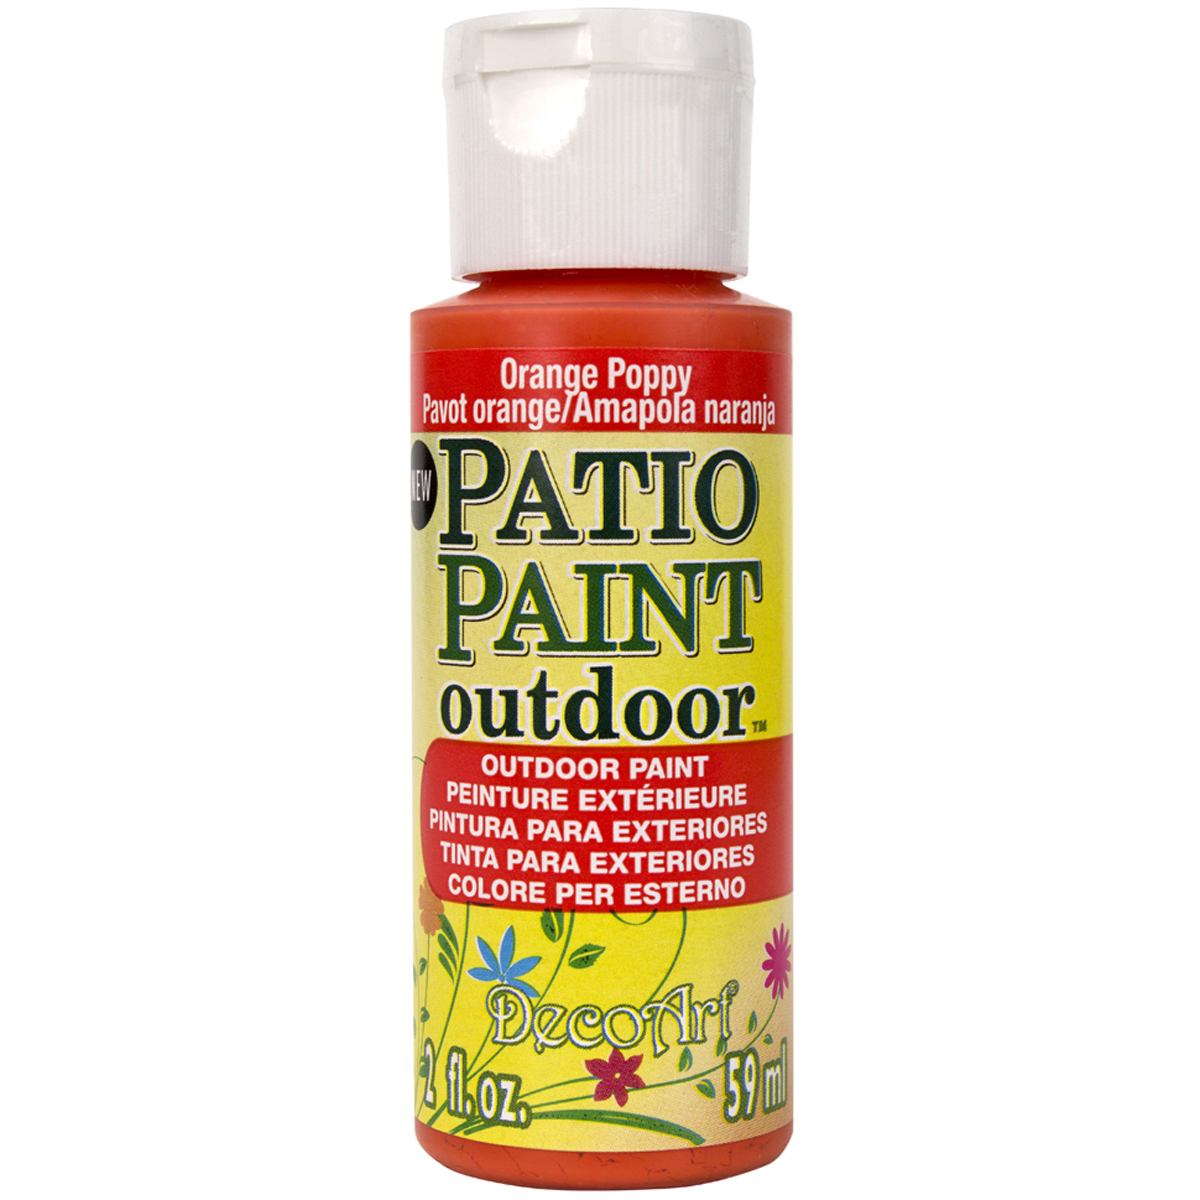 Patio Paint 2oz-Orange Poppy